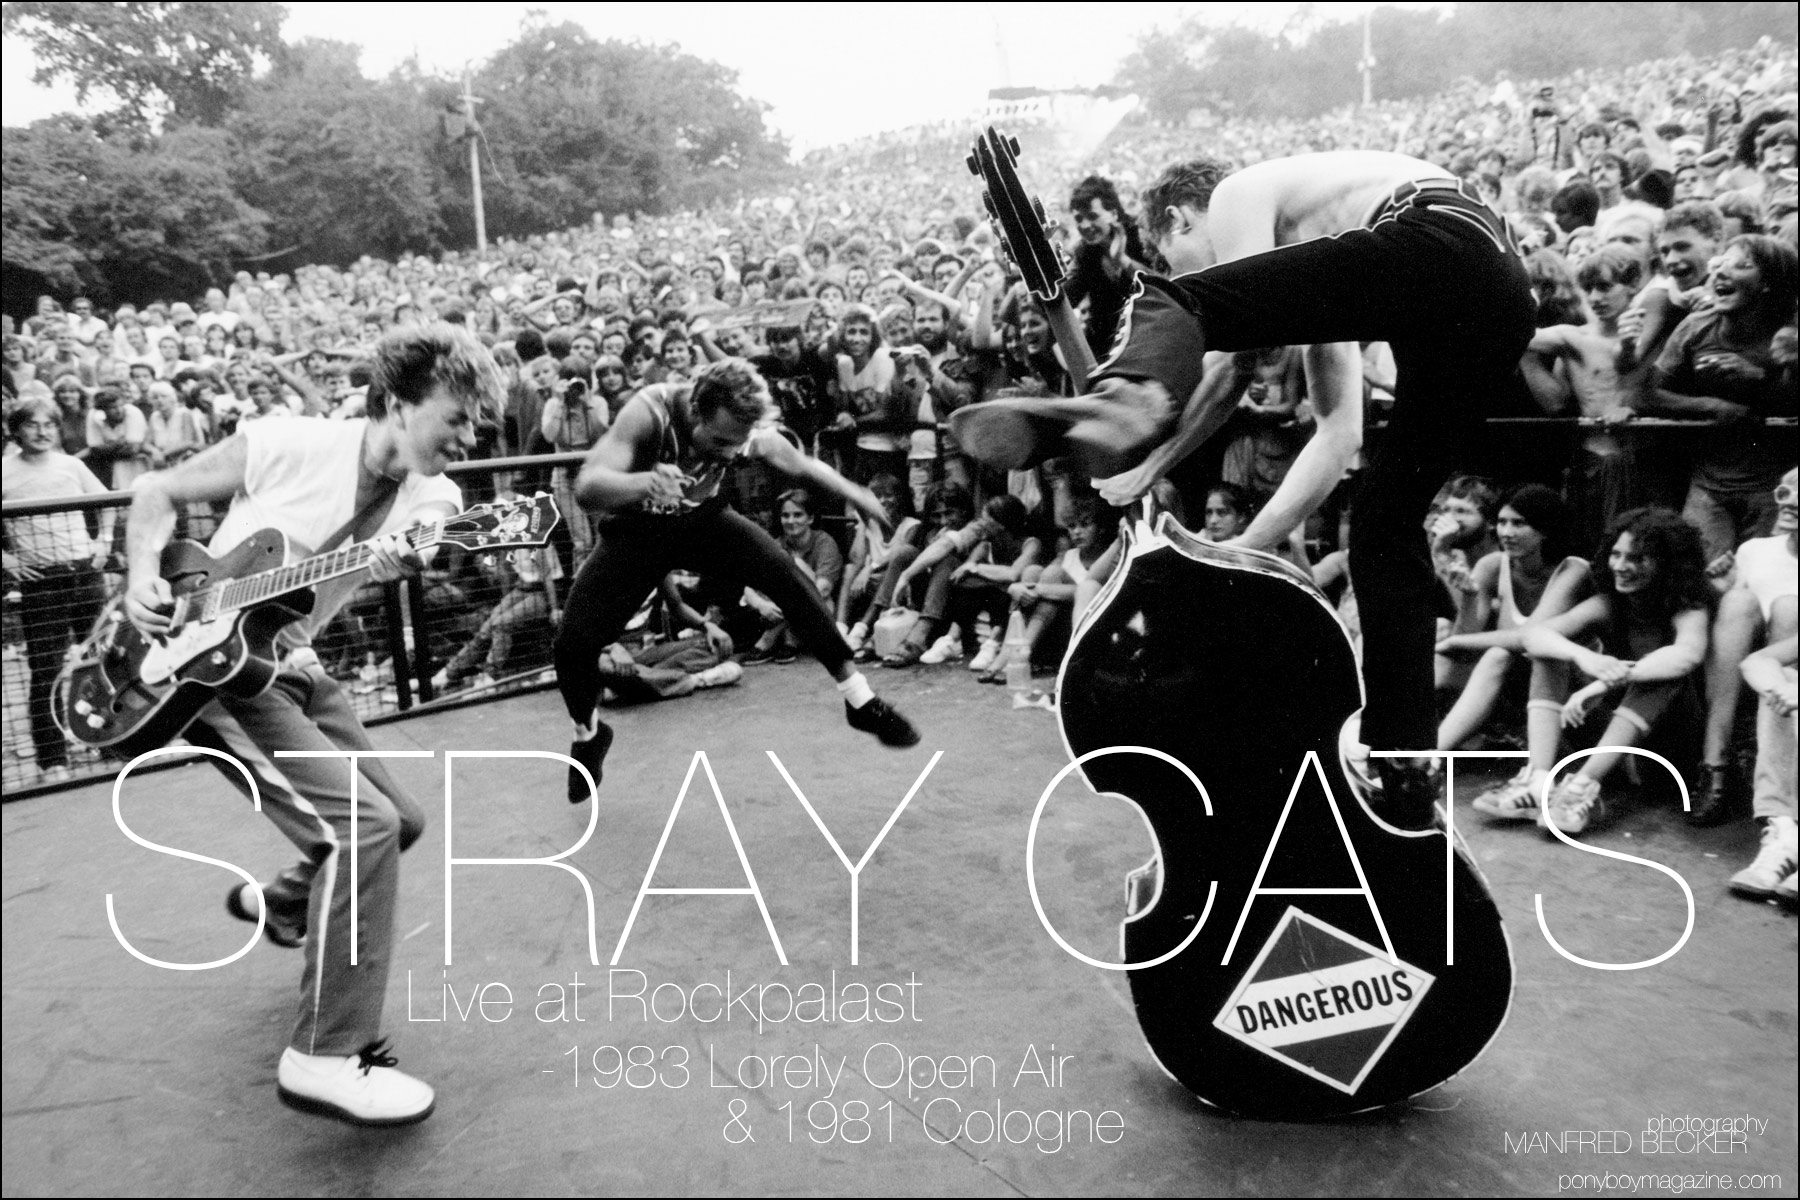 Stray Cats live at Rockpalast. Photograph by Manfred Becker. Ponyboy magazine.